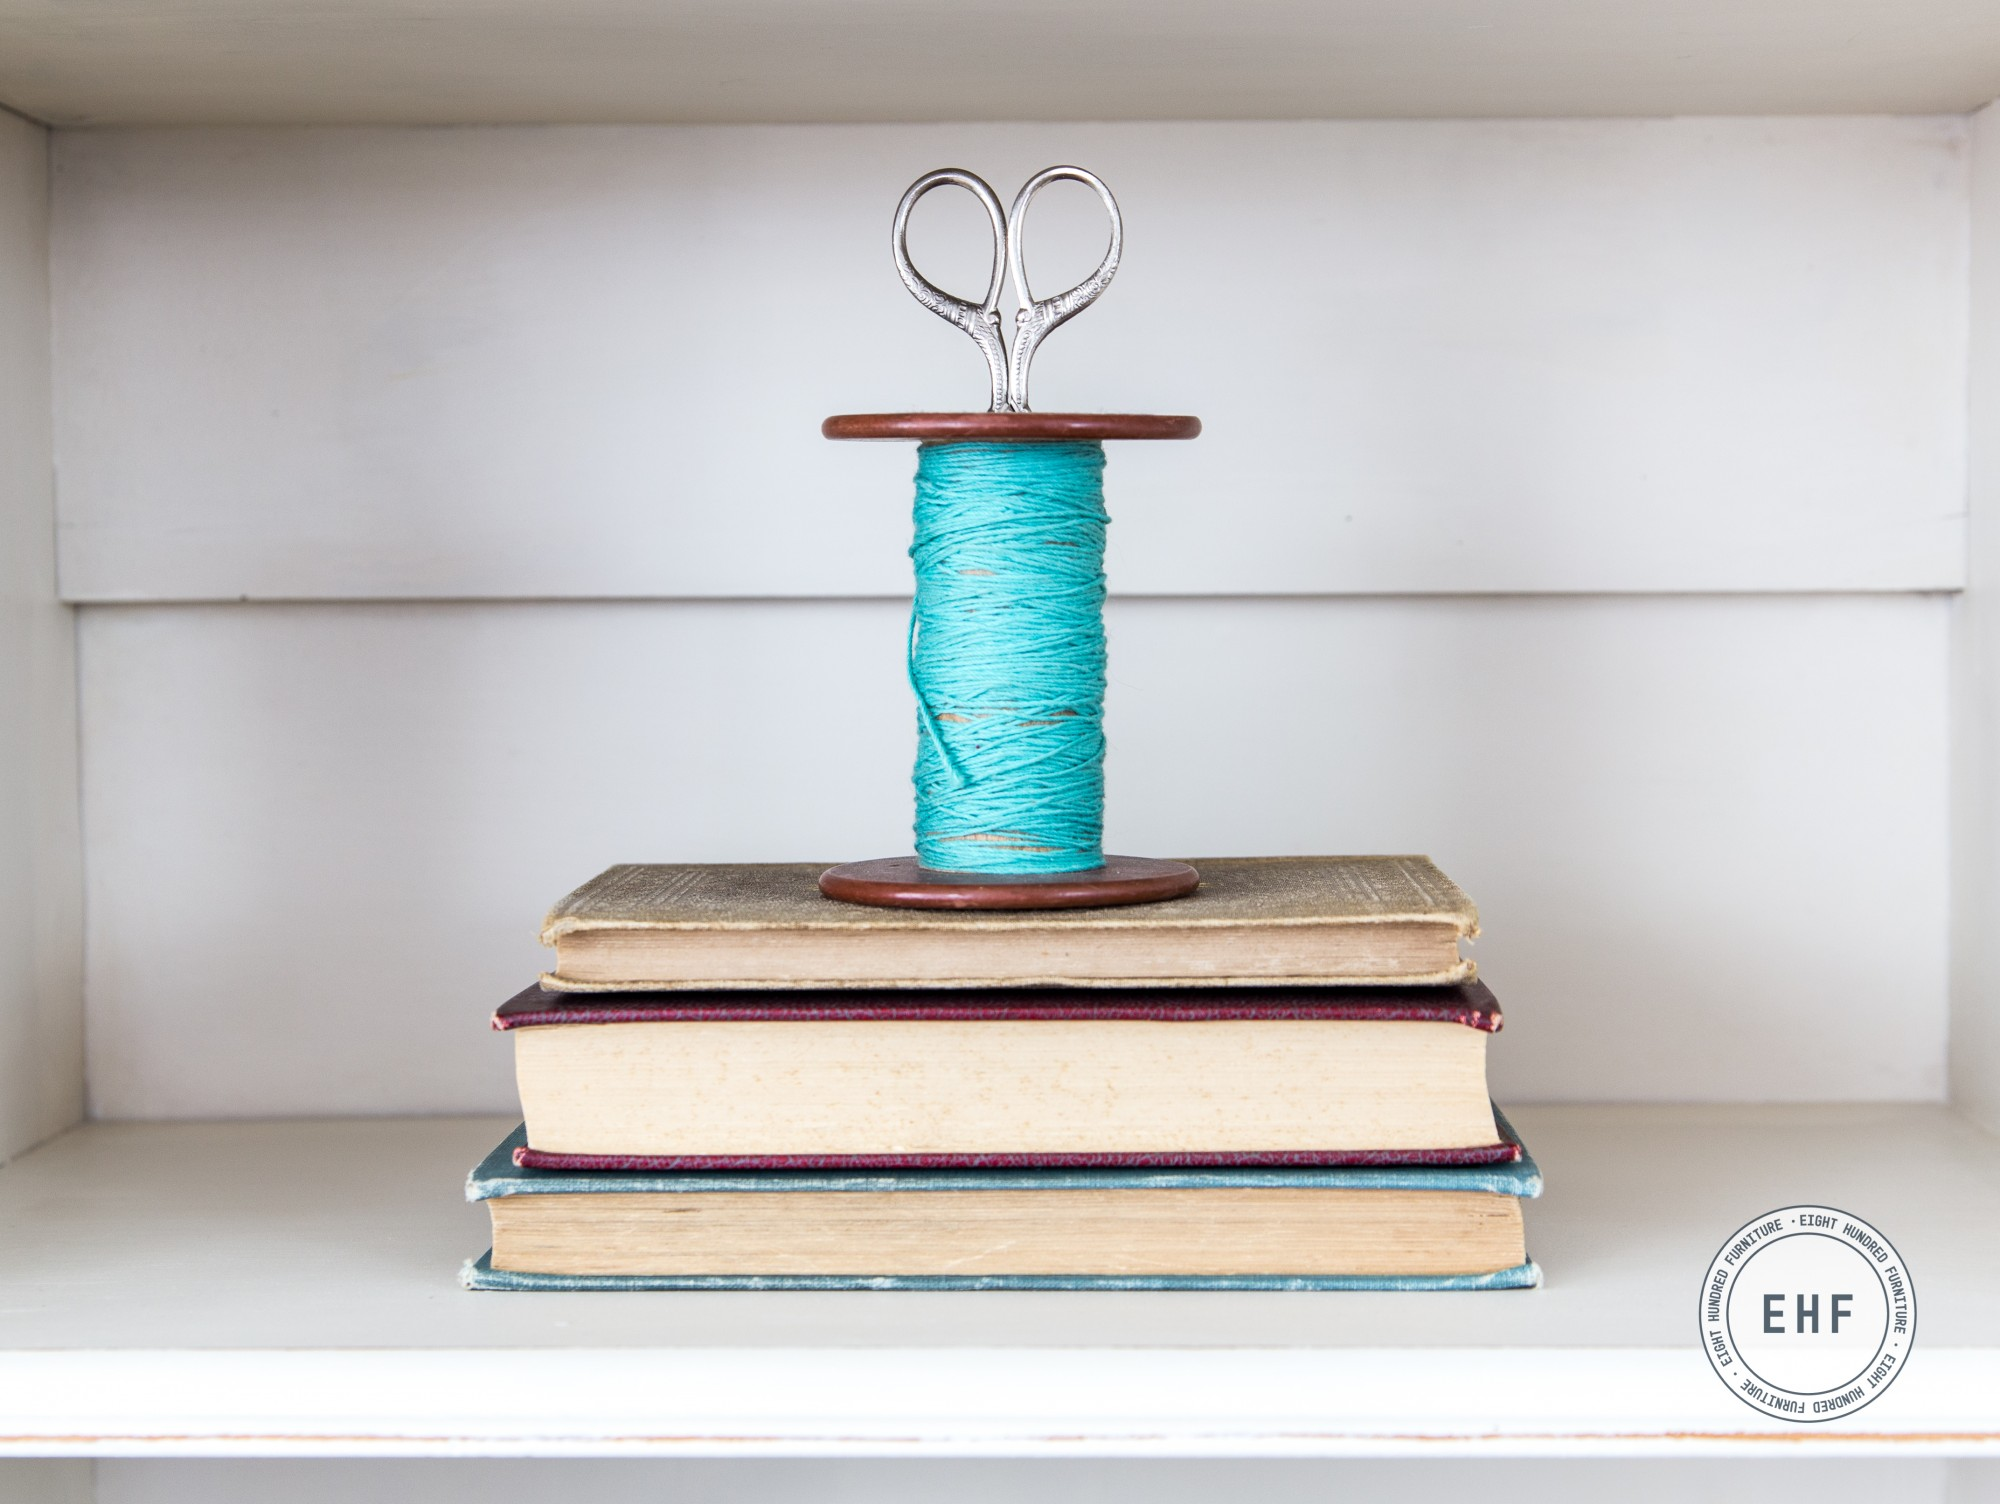 Spool of teal thread on a stack of books